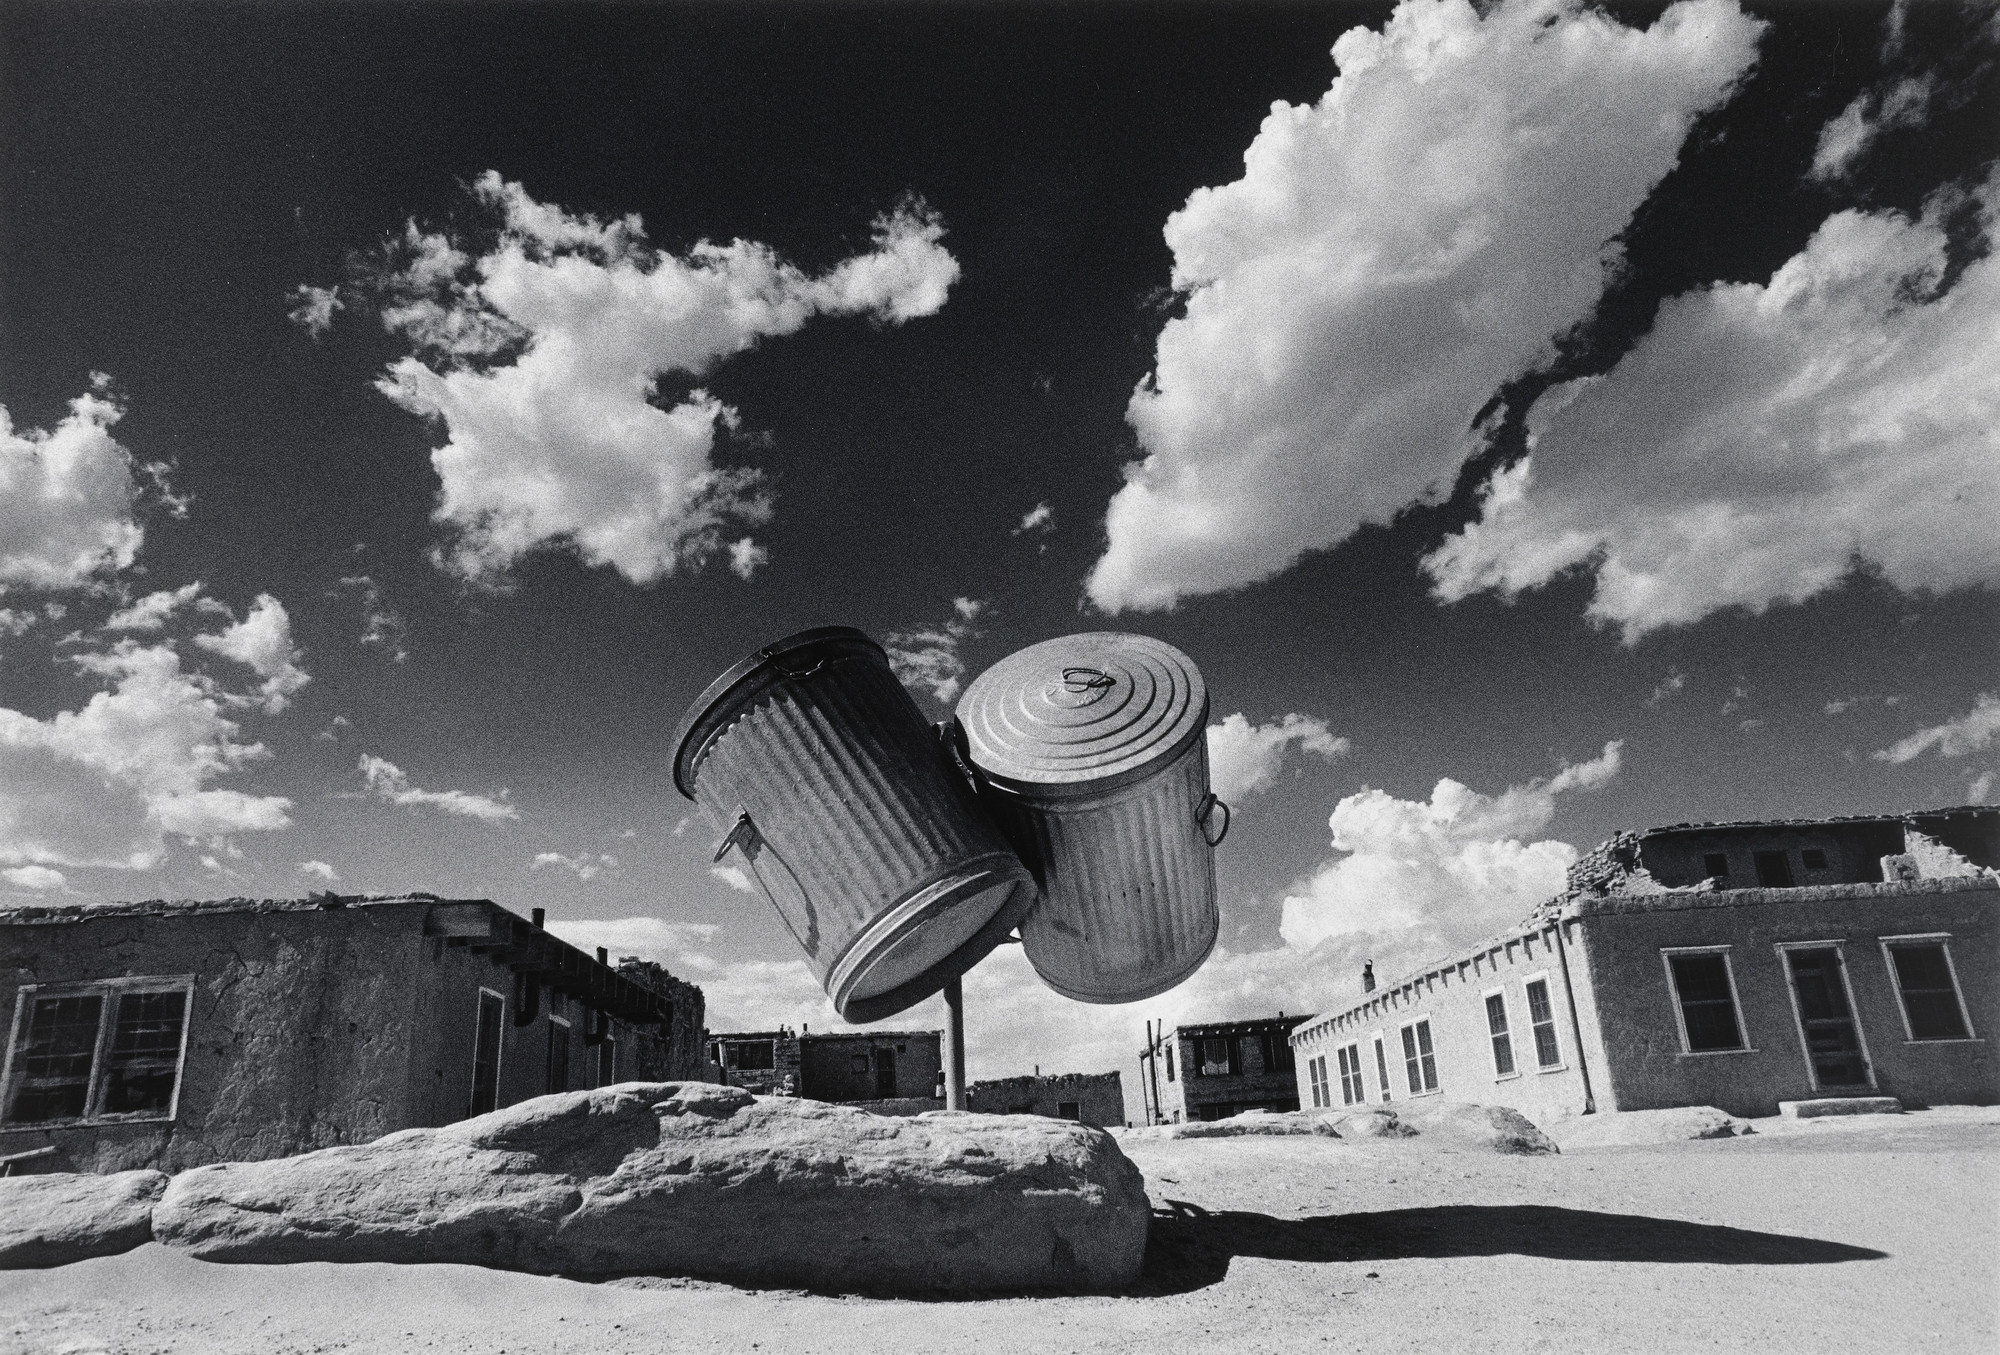 Ikko (Ikko Narahara). Two Garbage Cans, Indian Village, New Mexico. 1972